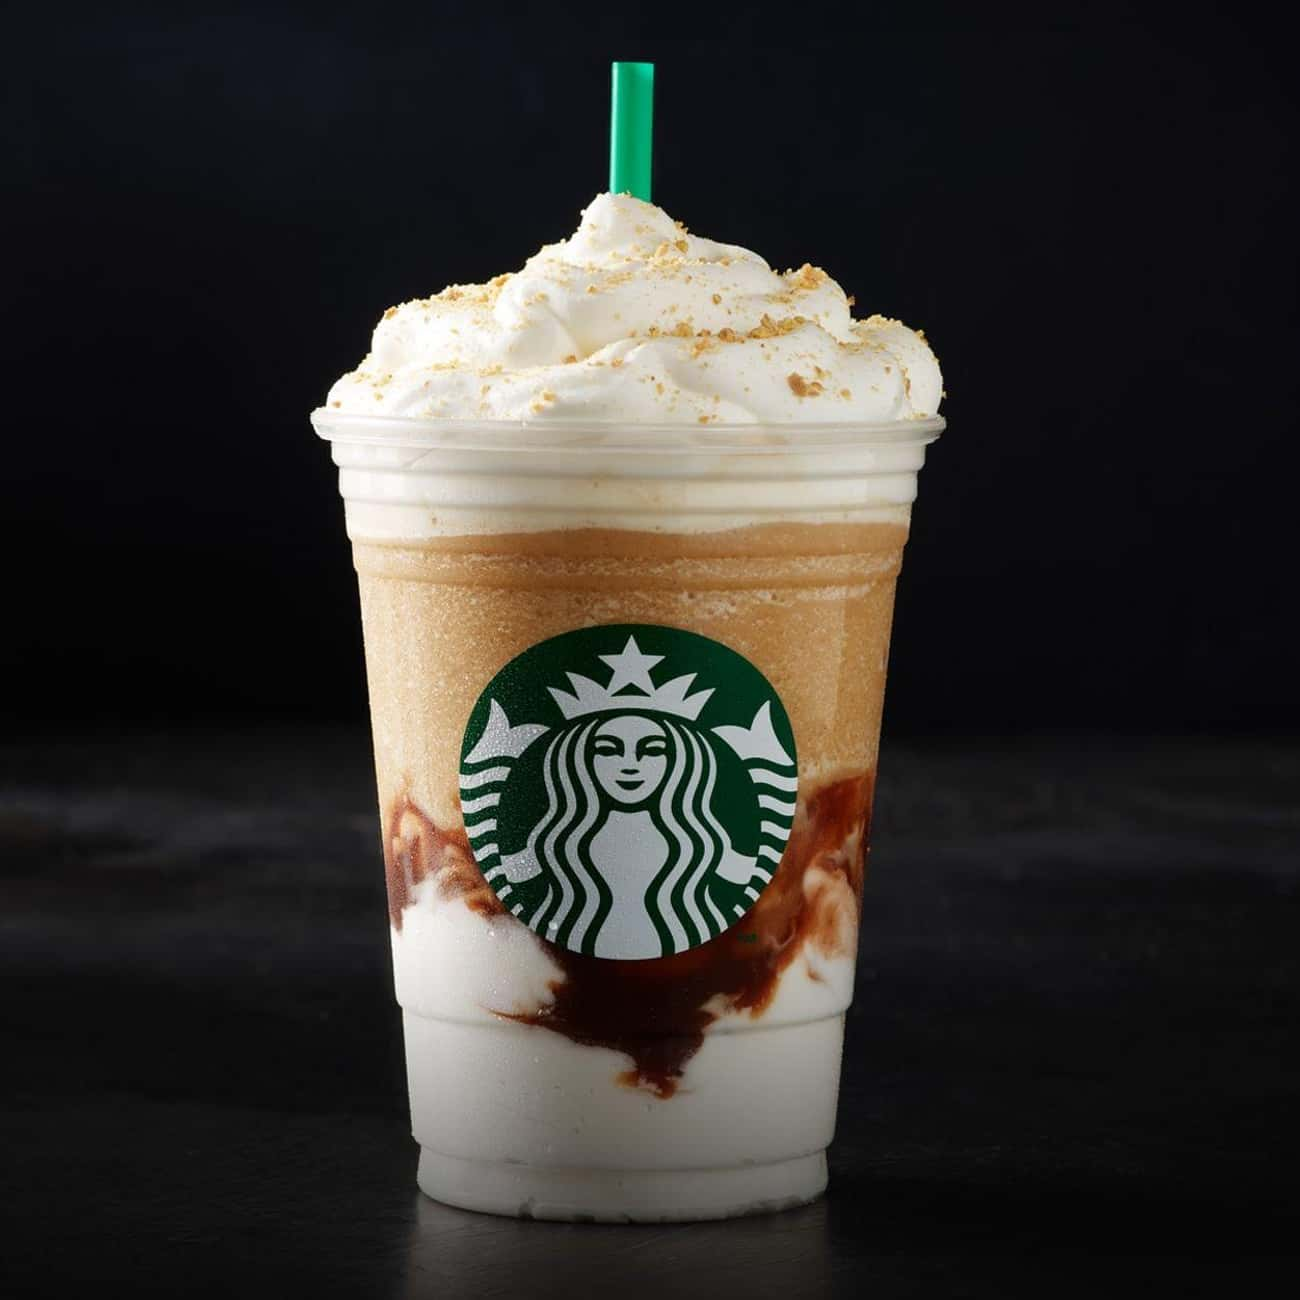 S'mores Crème Frappuccino is listed (or ranked) 4 on the list The Best Frappuccino Flavors At Starbucks